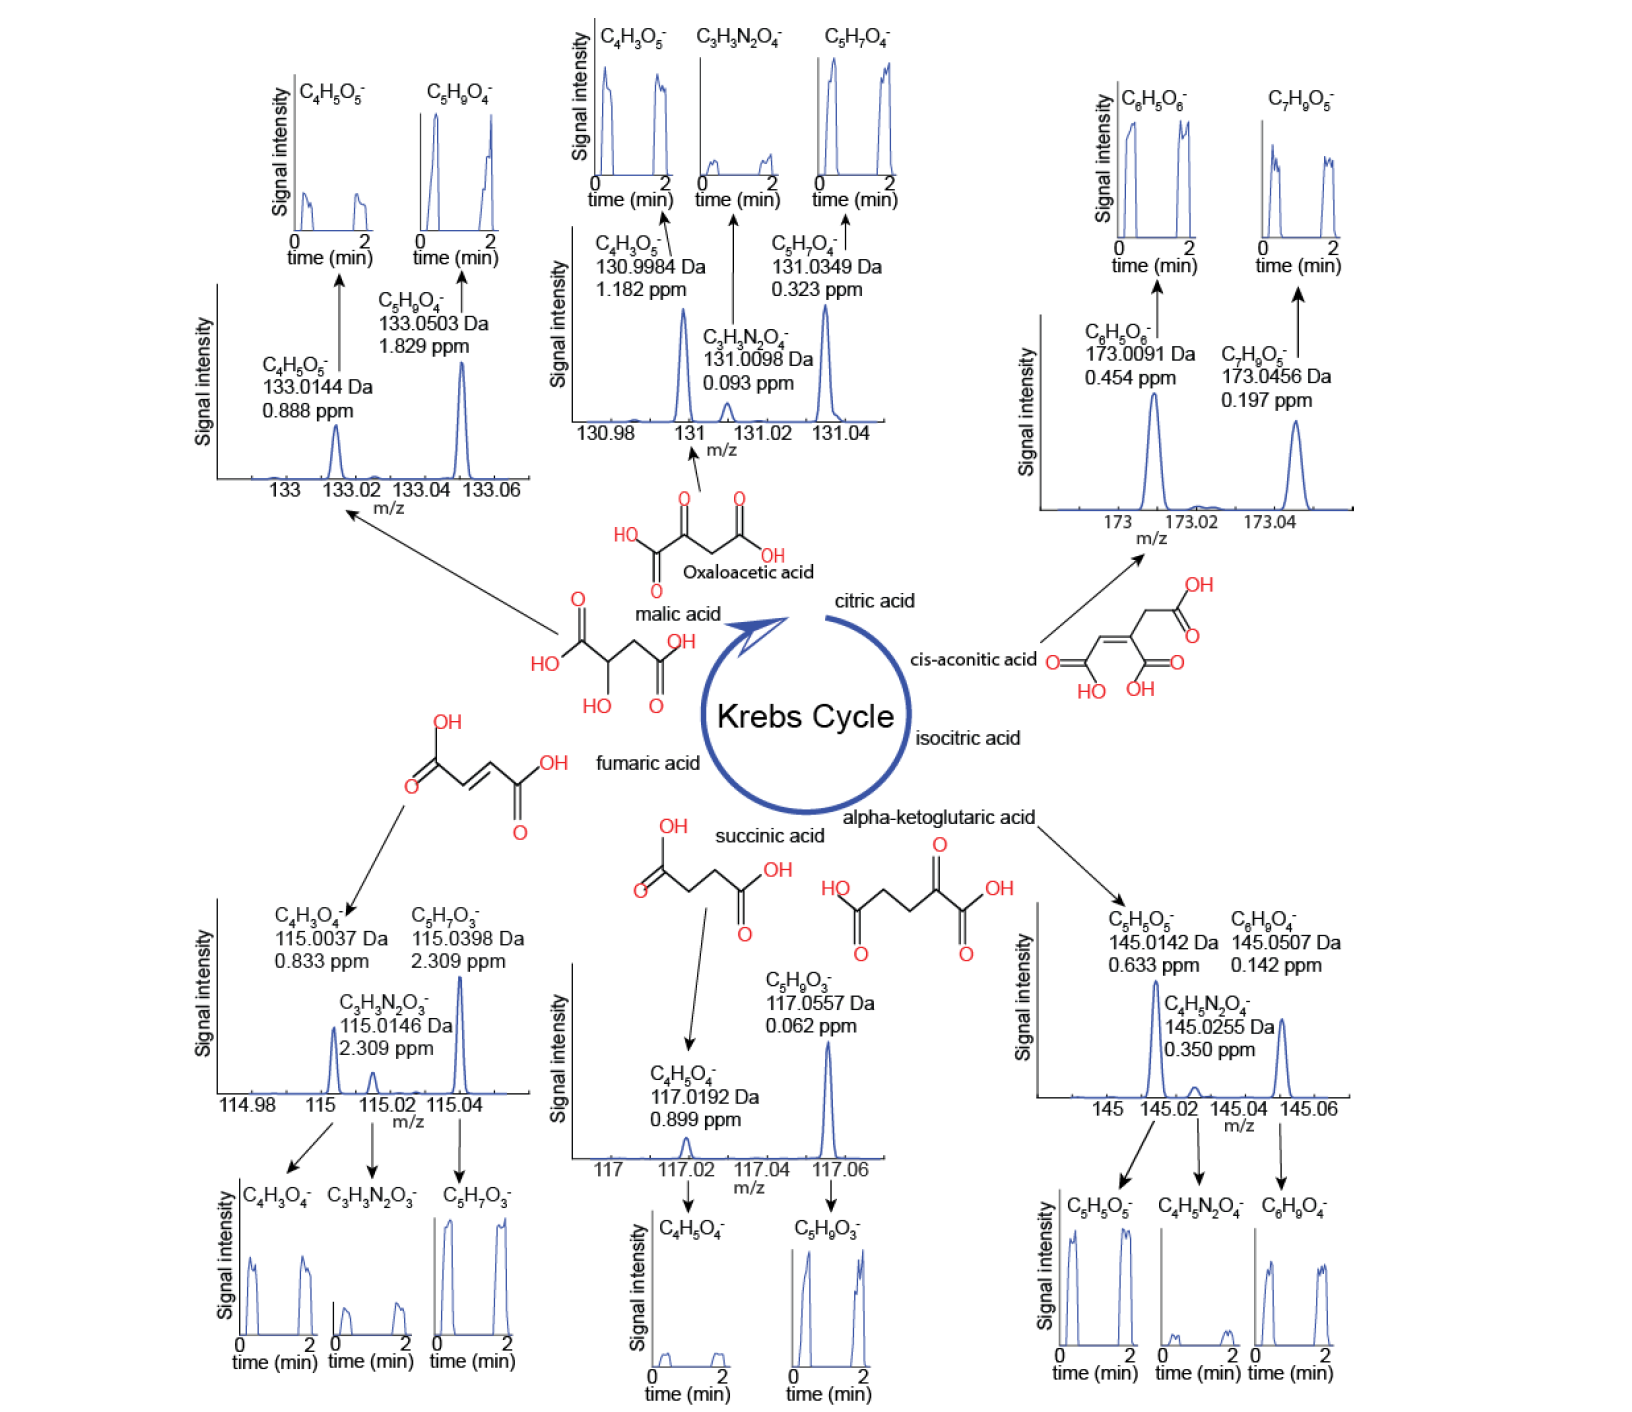 Real-Time Monitoring of Tricarboxylic Acid Metabolites in Exhaled Breath.png